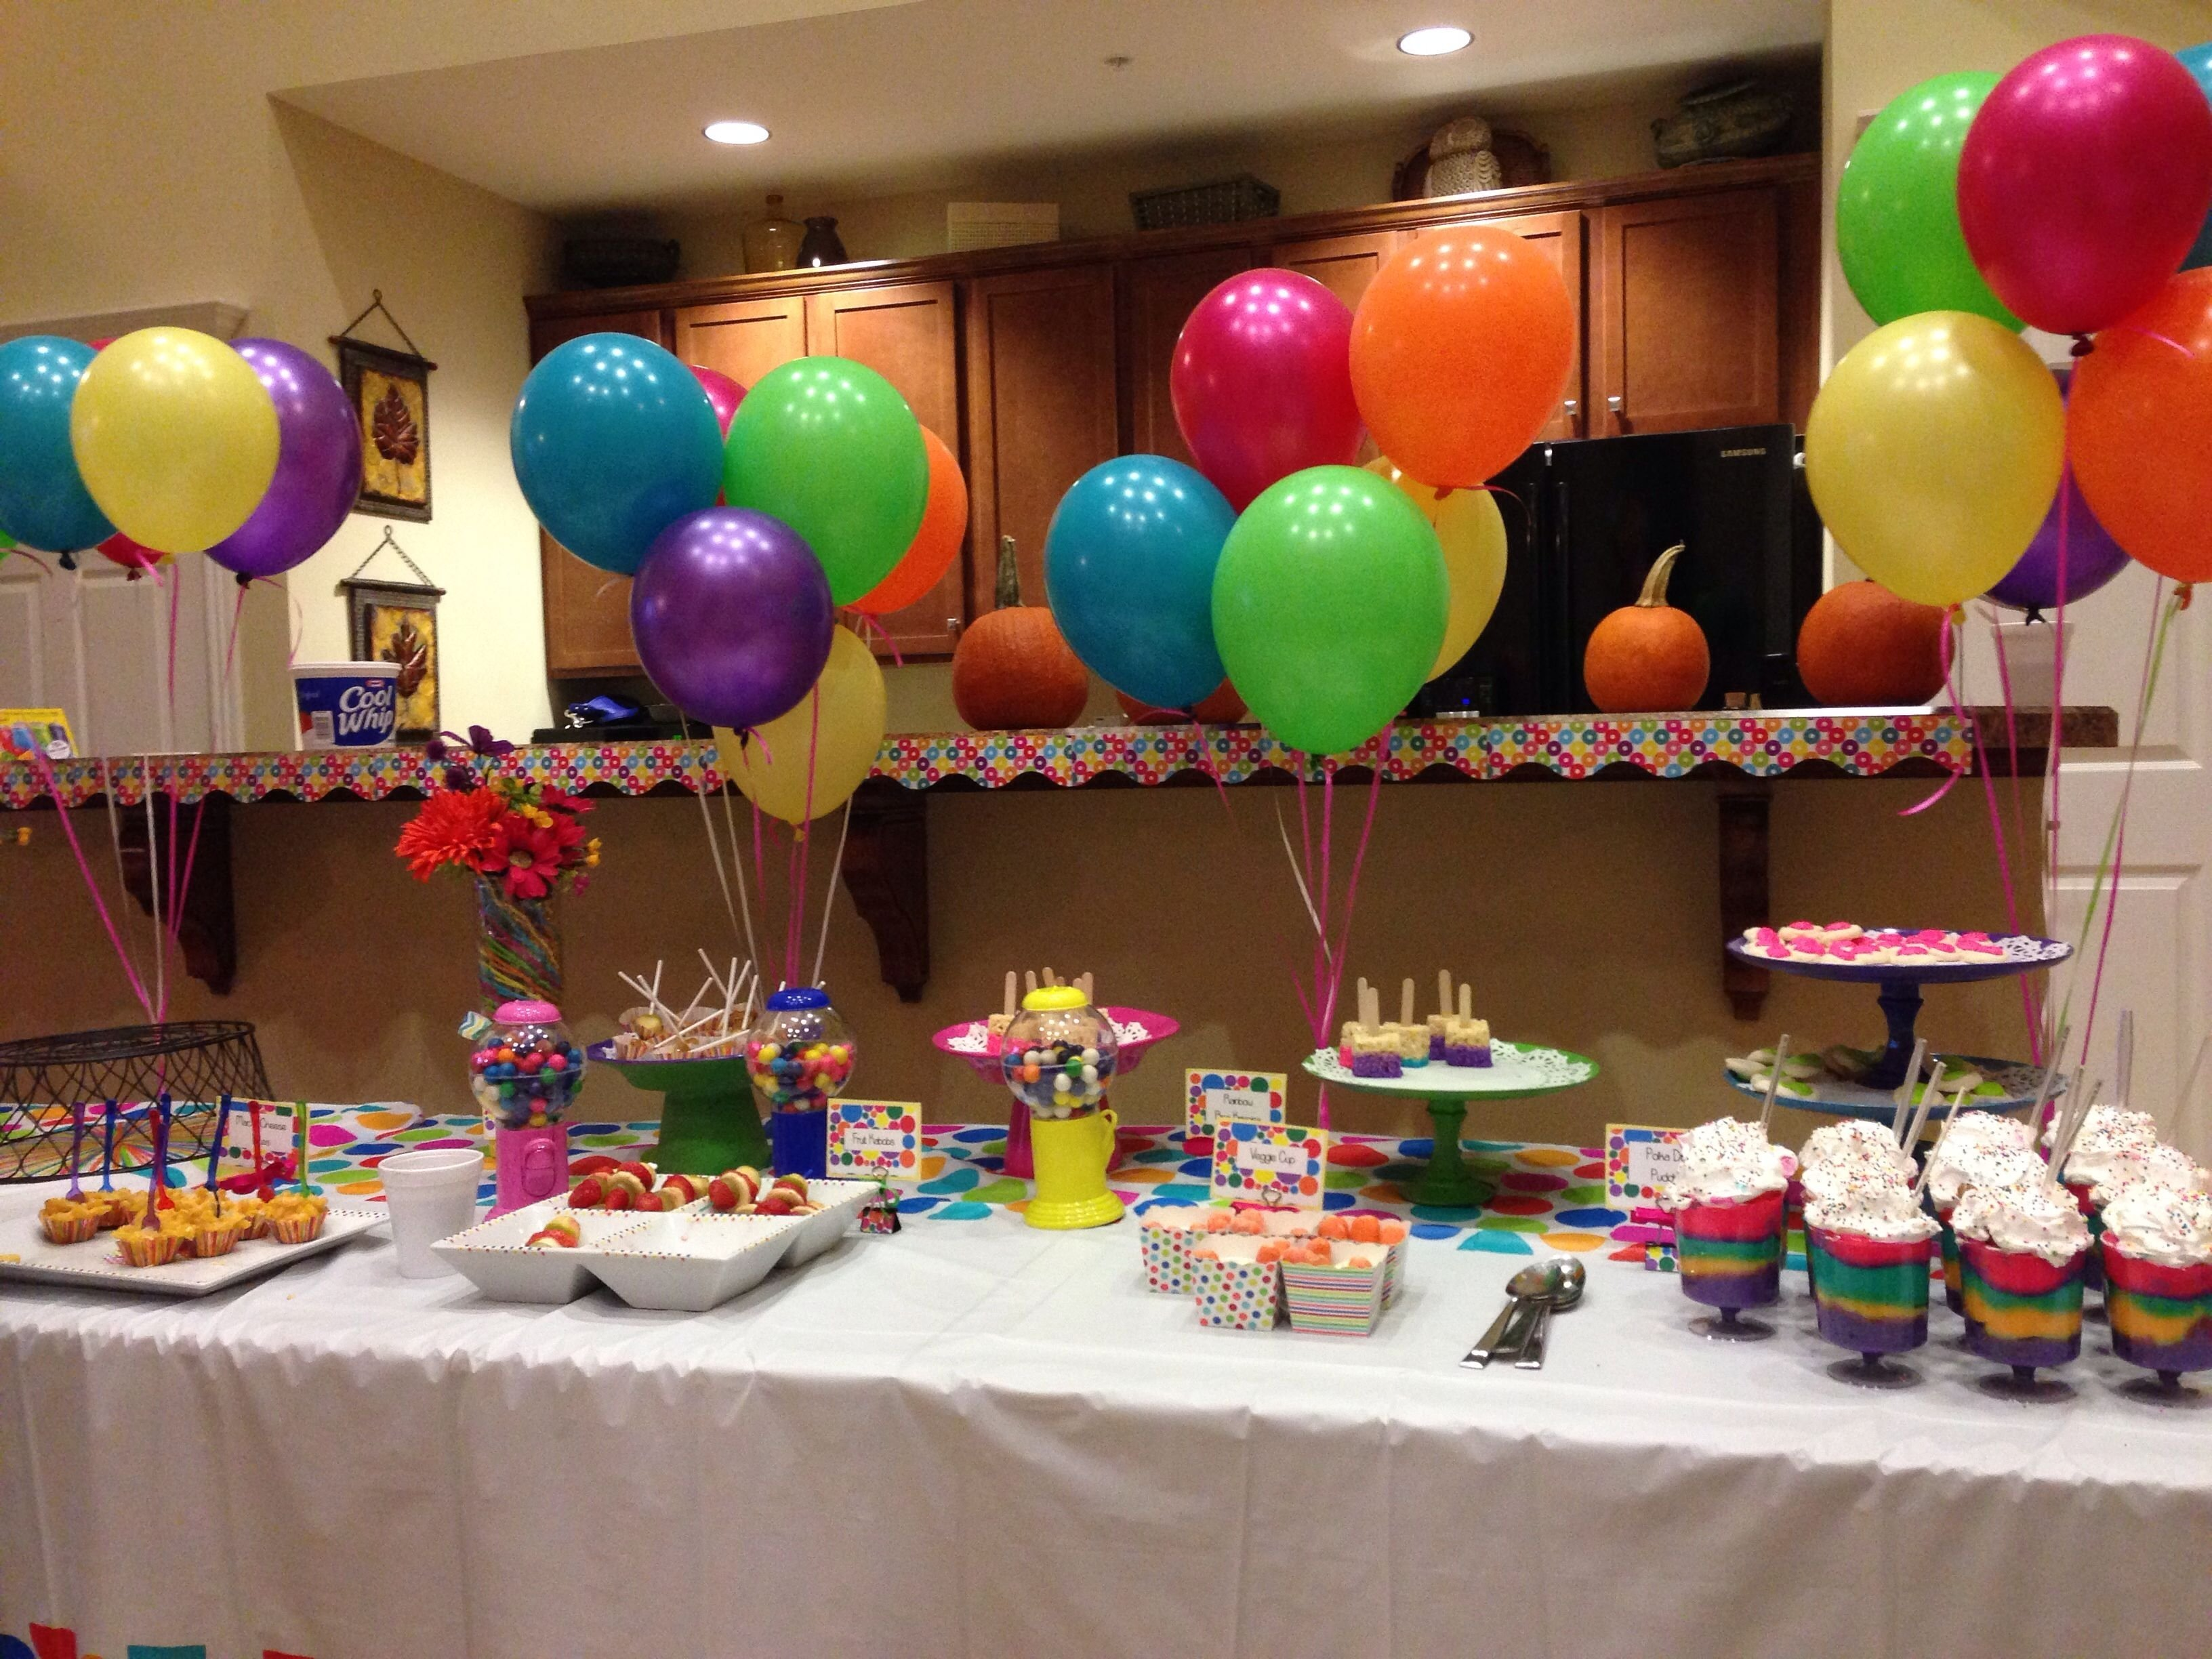 10 Lovable Party Ideas For A 2 Year Old 4 year old birthday party ideas party ideas for kids pinterest 7 2020